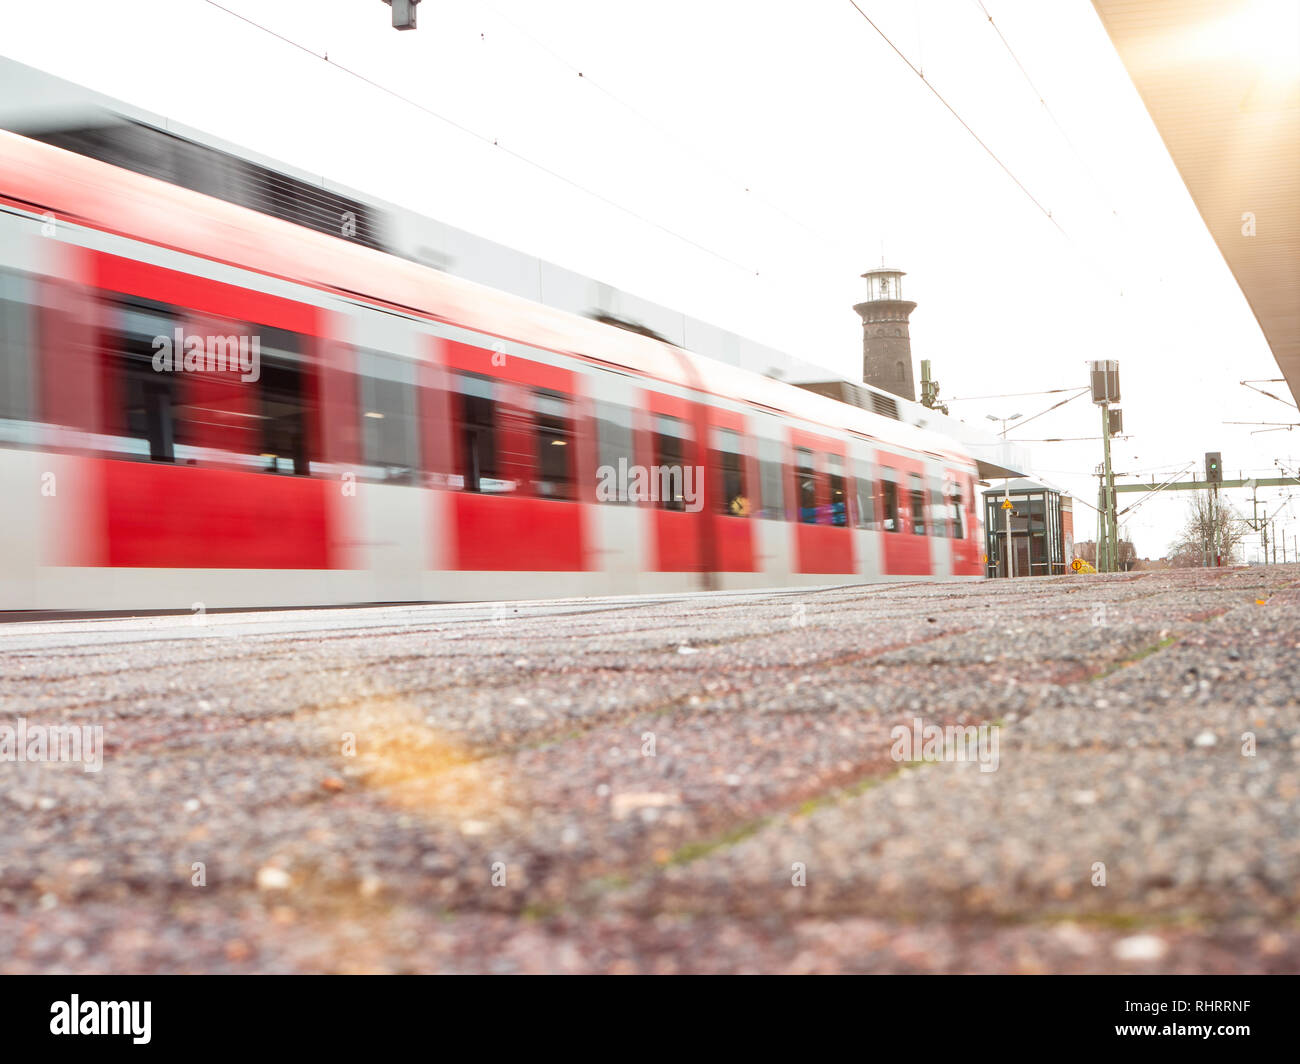 rail platform with red commuter train in motion blur in Cologne, Germany. - Stock Image